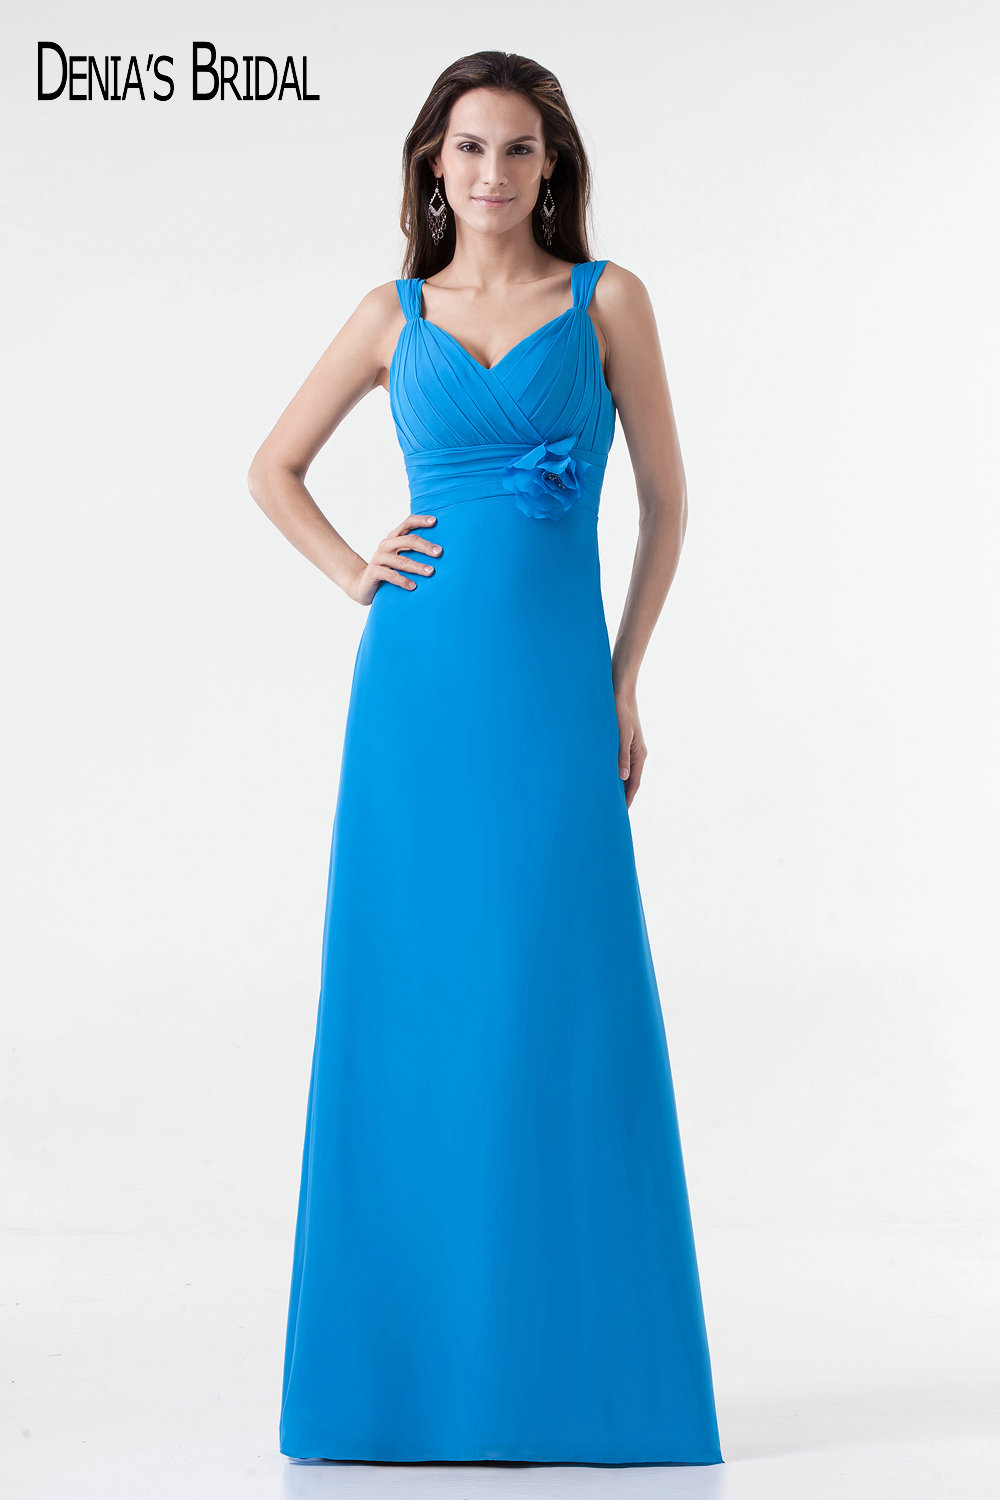 2017 Actual Images A line Blue Evening Dresses with Sweetheart Neckline Chiffon Floor Length Belt Long